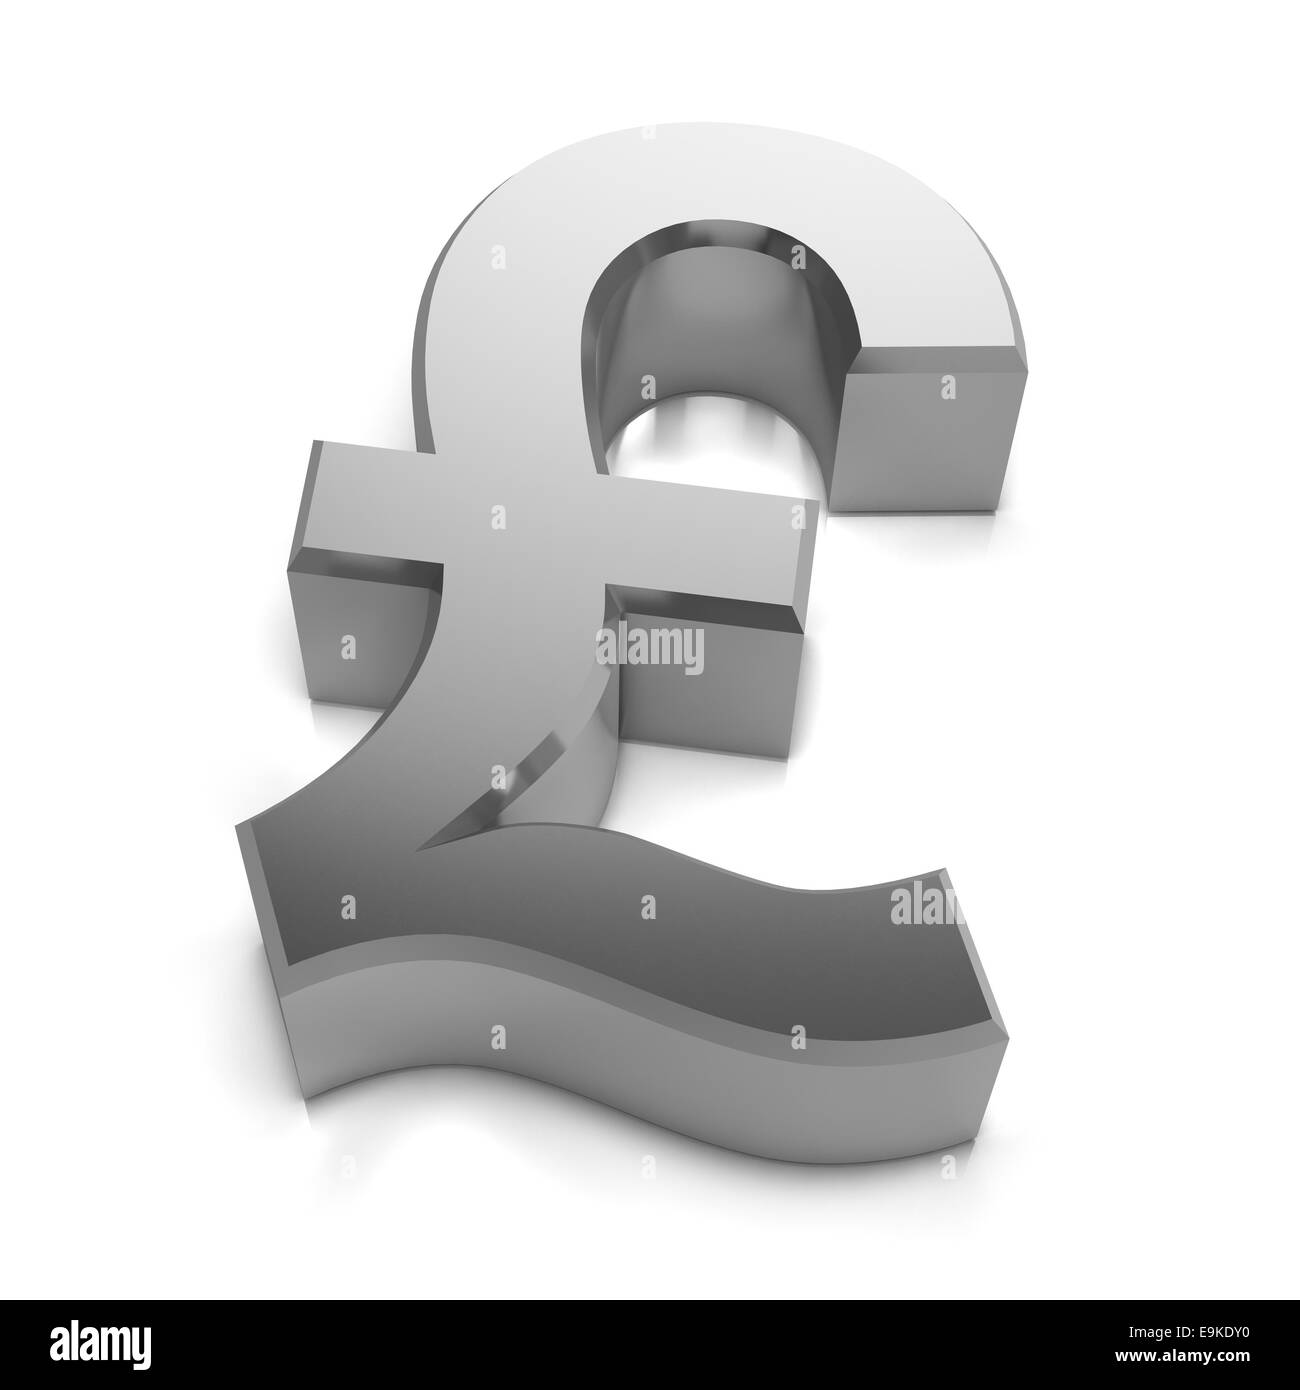 3d Render Of A Silver Uk Pounds Sterling Currency Symbol Stock Photo